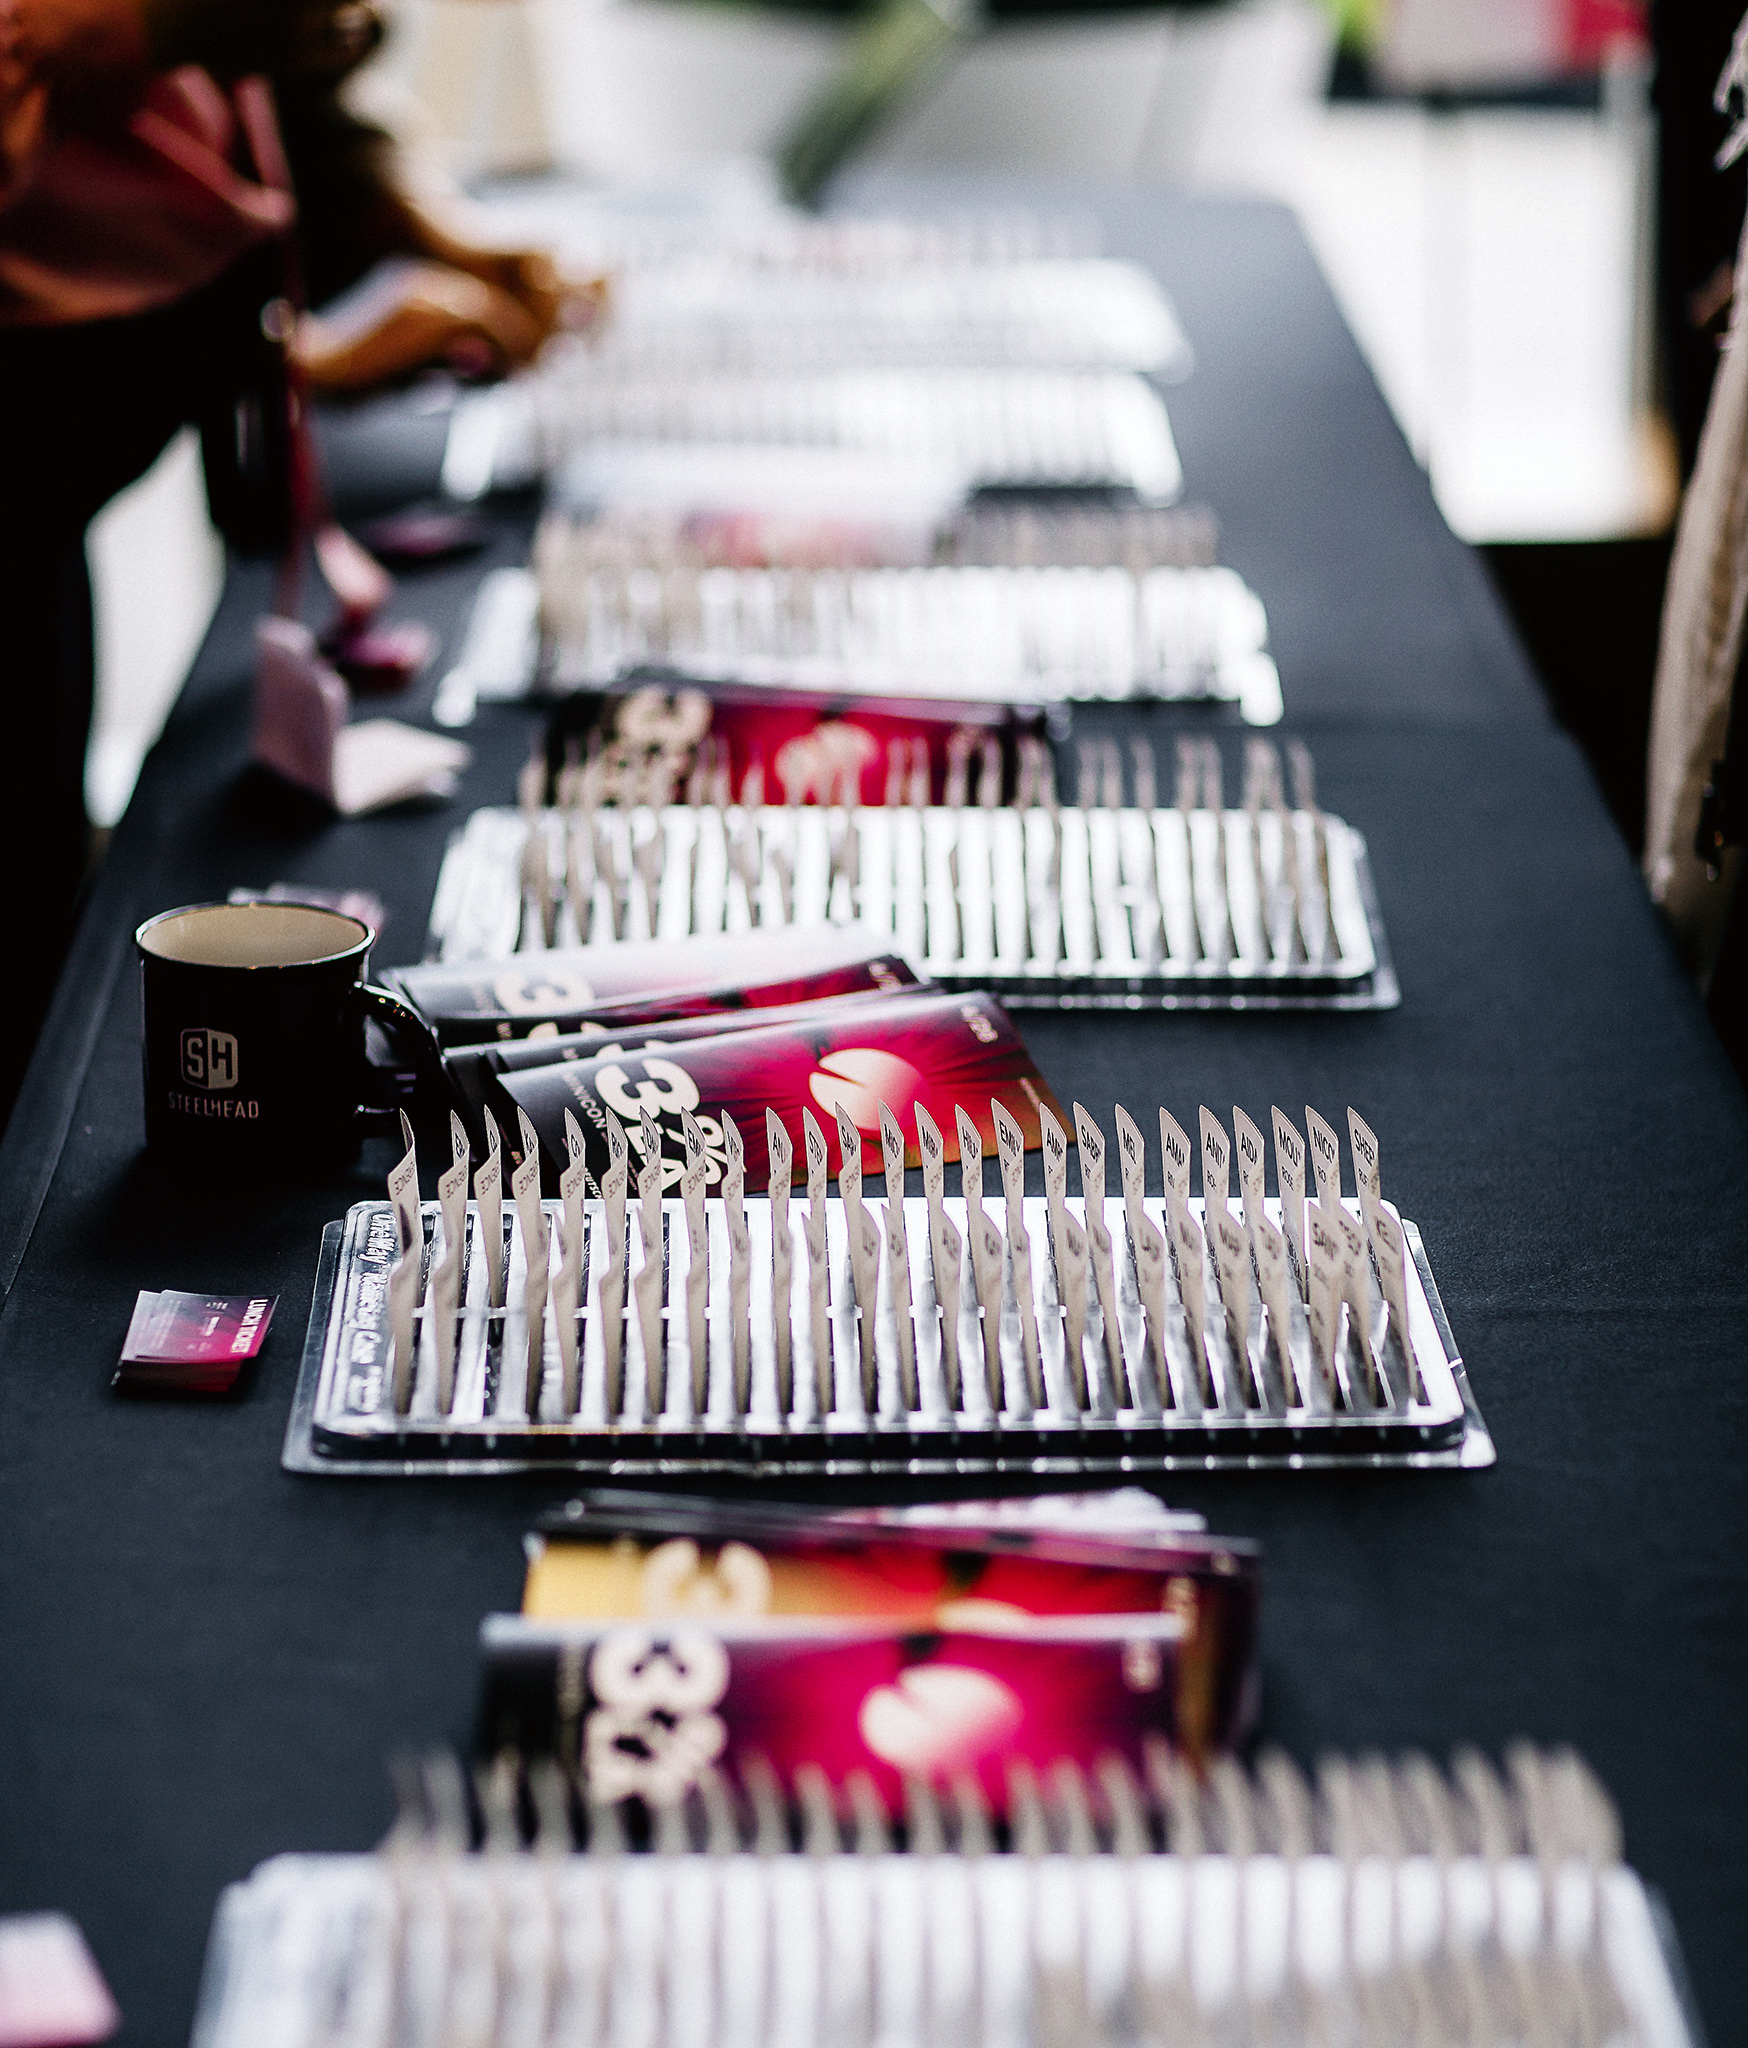 Name badges await the arrival of attendees at the 3% Mini-Conference at the Steelhead headquarters in Los Angeles on April 26th, 2018.